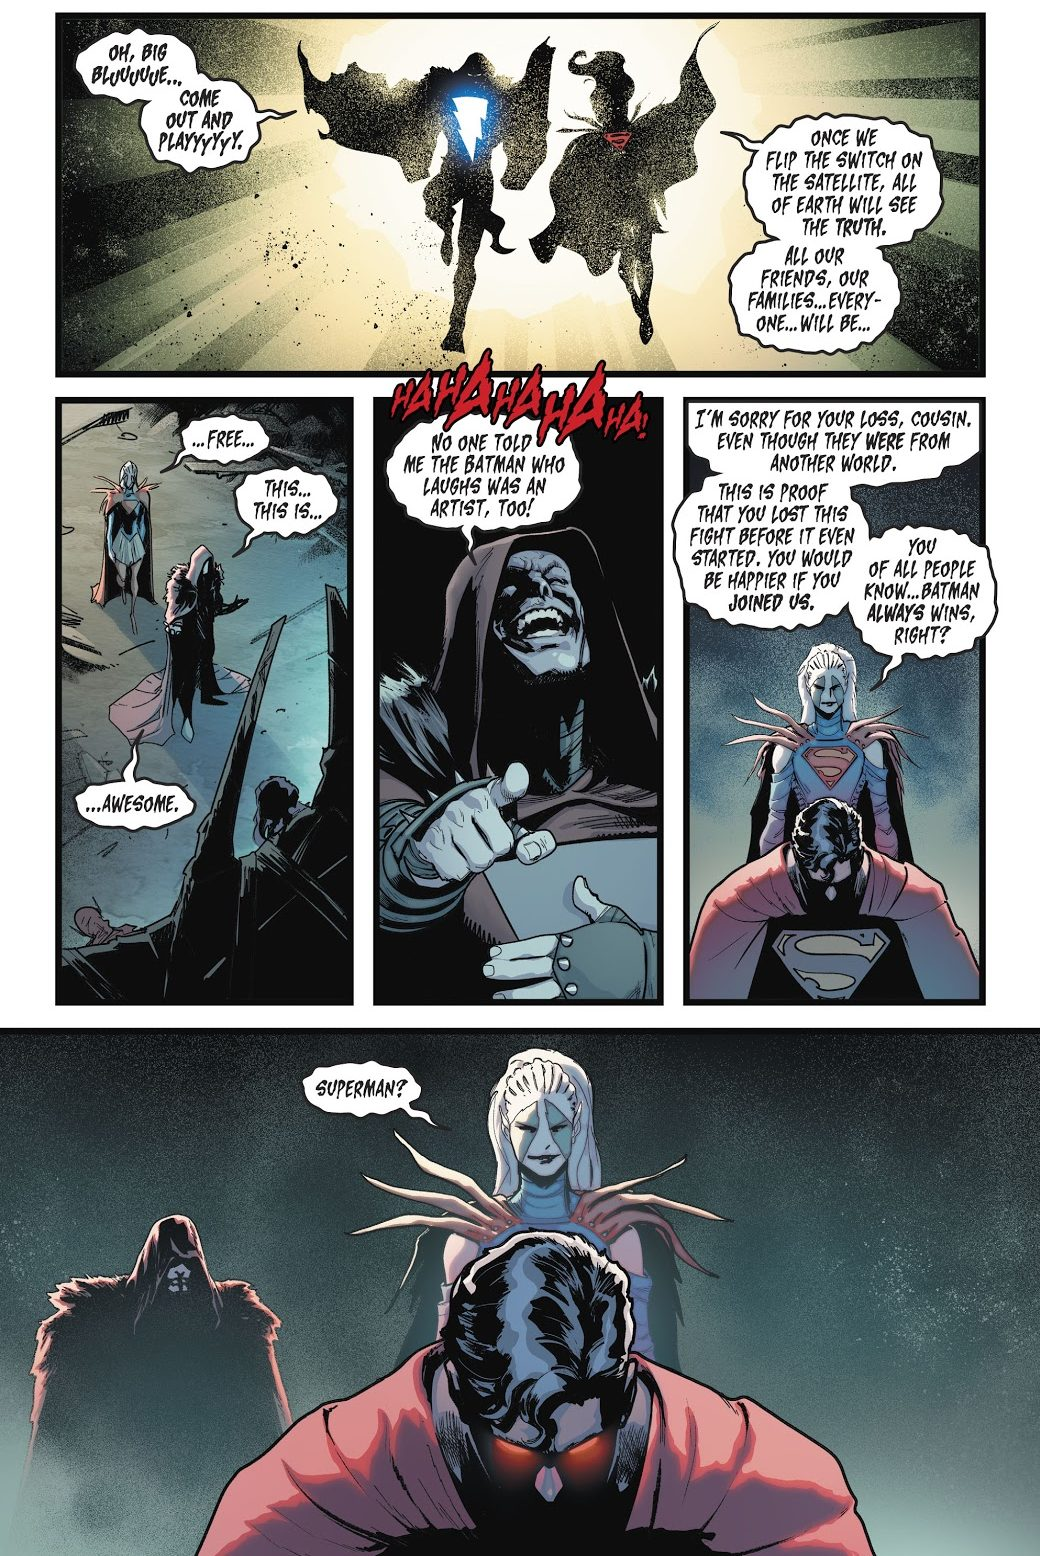 Superman-VS-Infected-Supergirl-And-Shazam